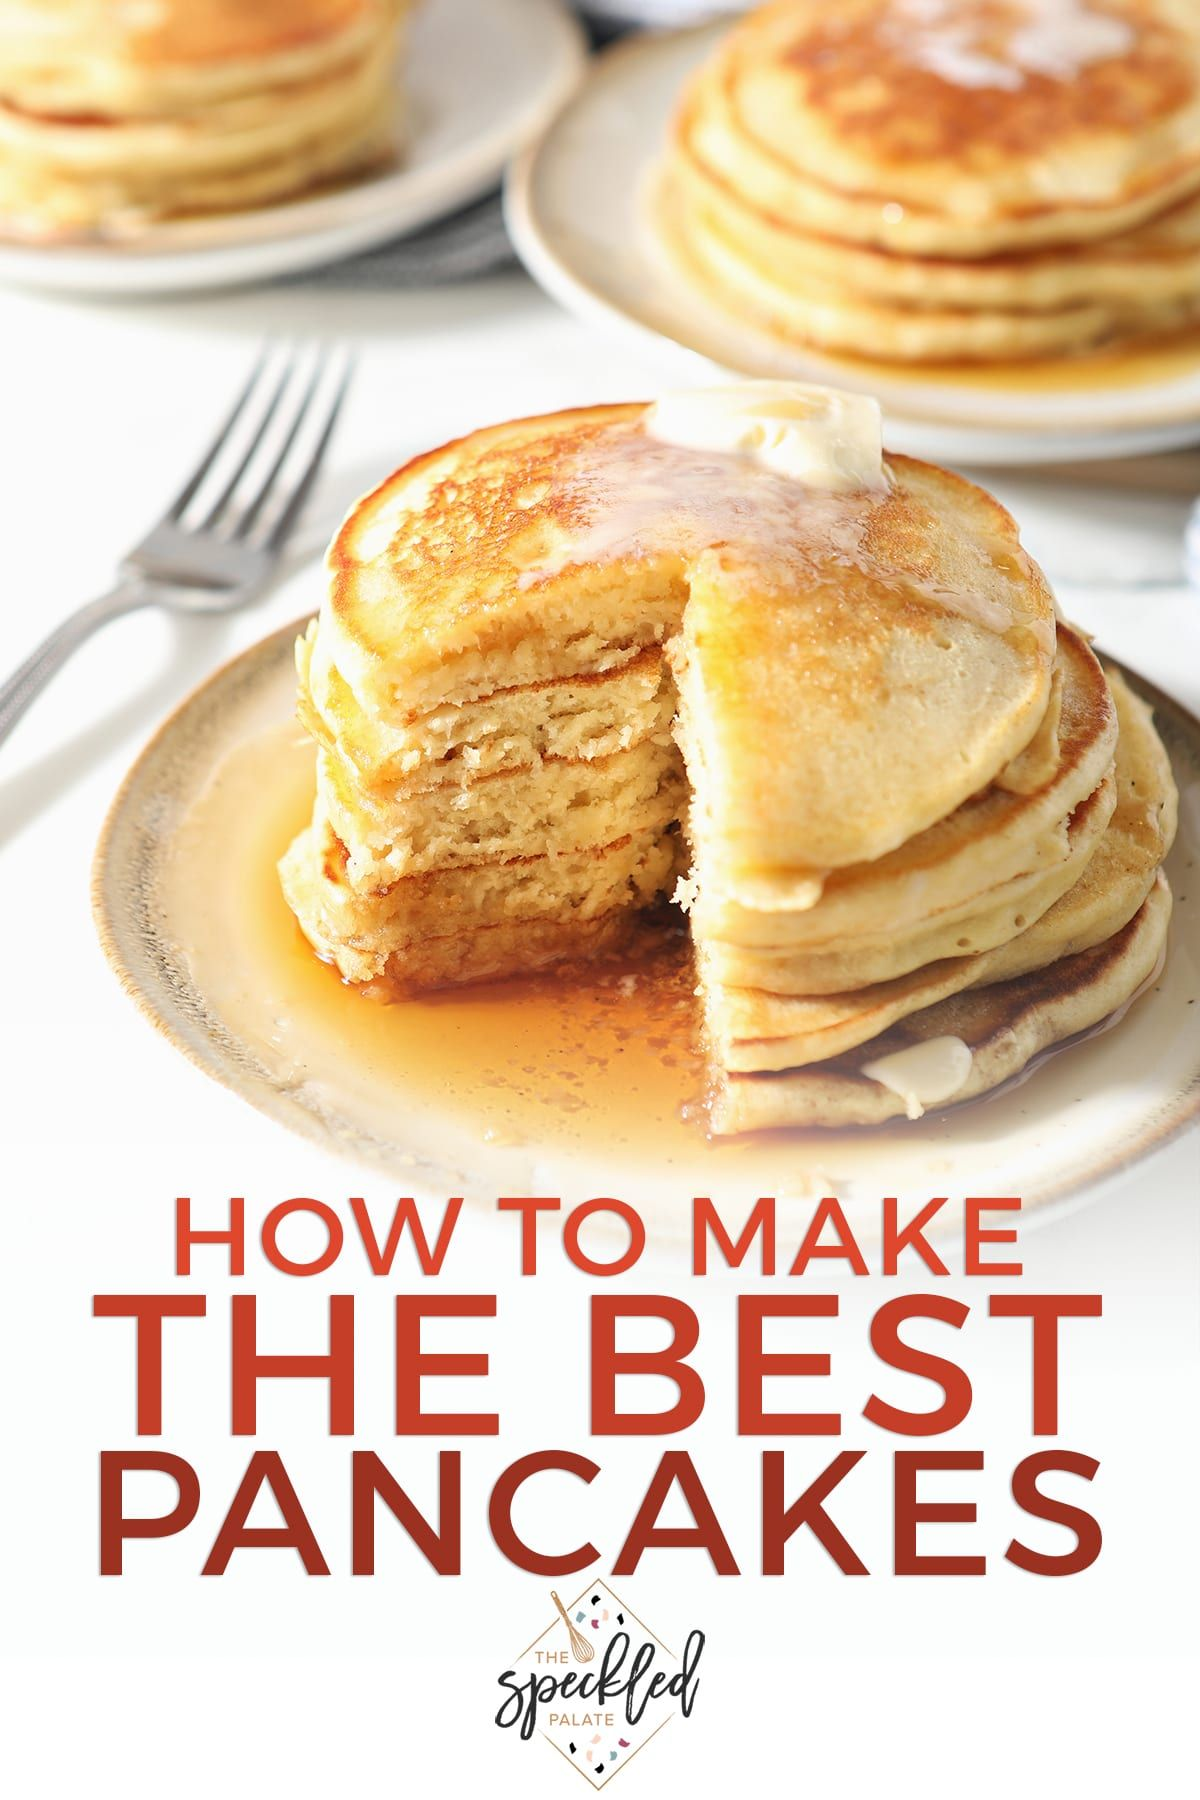 Old Fashioned Pancake Recipe Easy Fluffy Homemade Pancakes Recipe In 2021 Recipes Pancake Recipe Easy Fluffy Old Fashioned Pancake Recipe